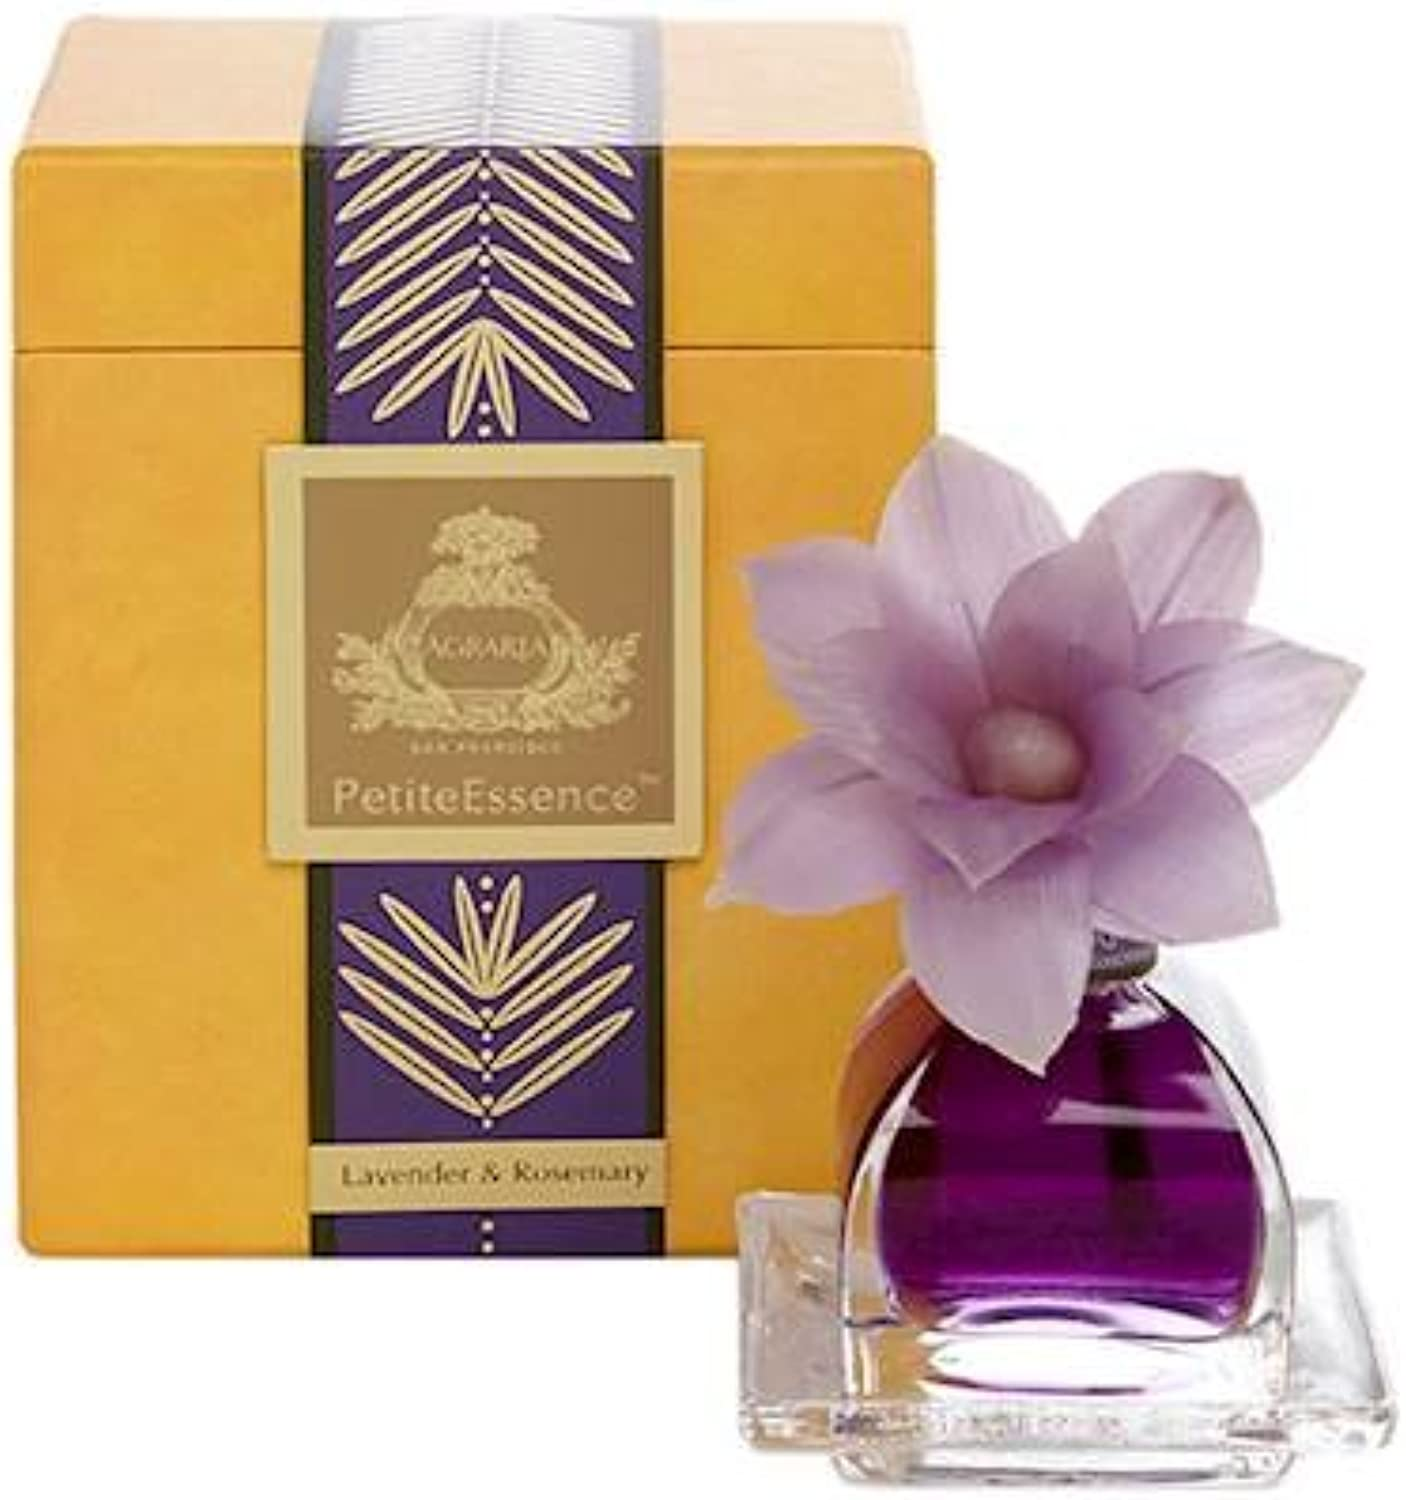 Lavender & pinkmary Flower Petitte Essence Reed Diffuser